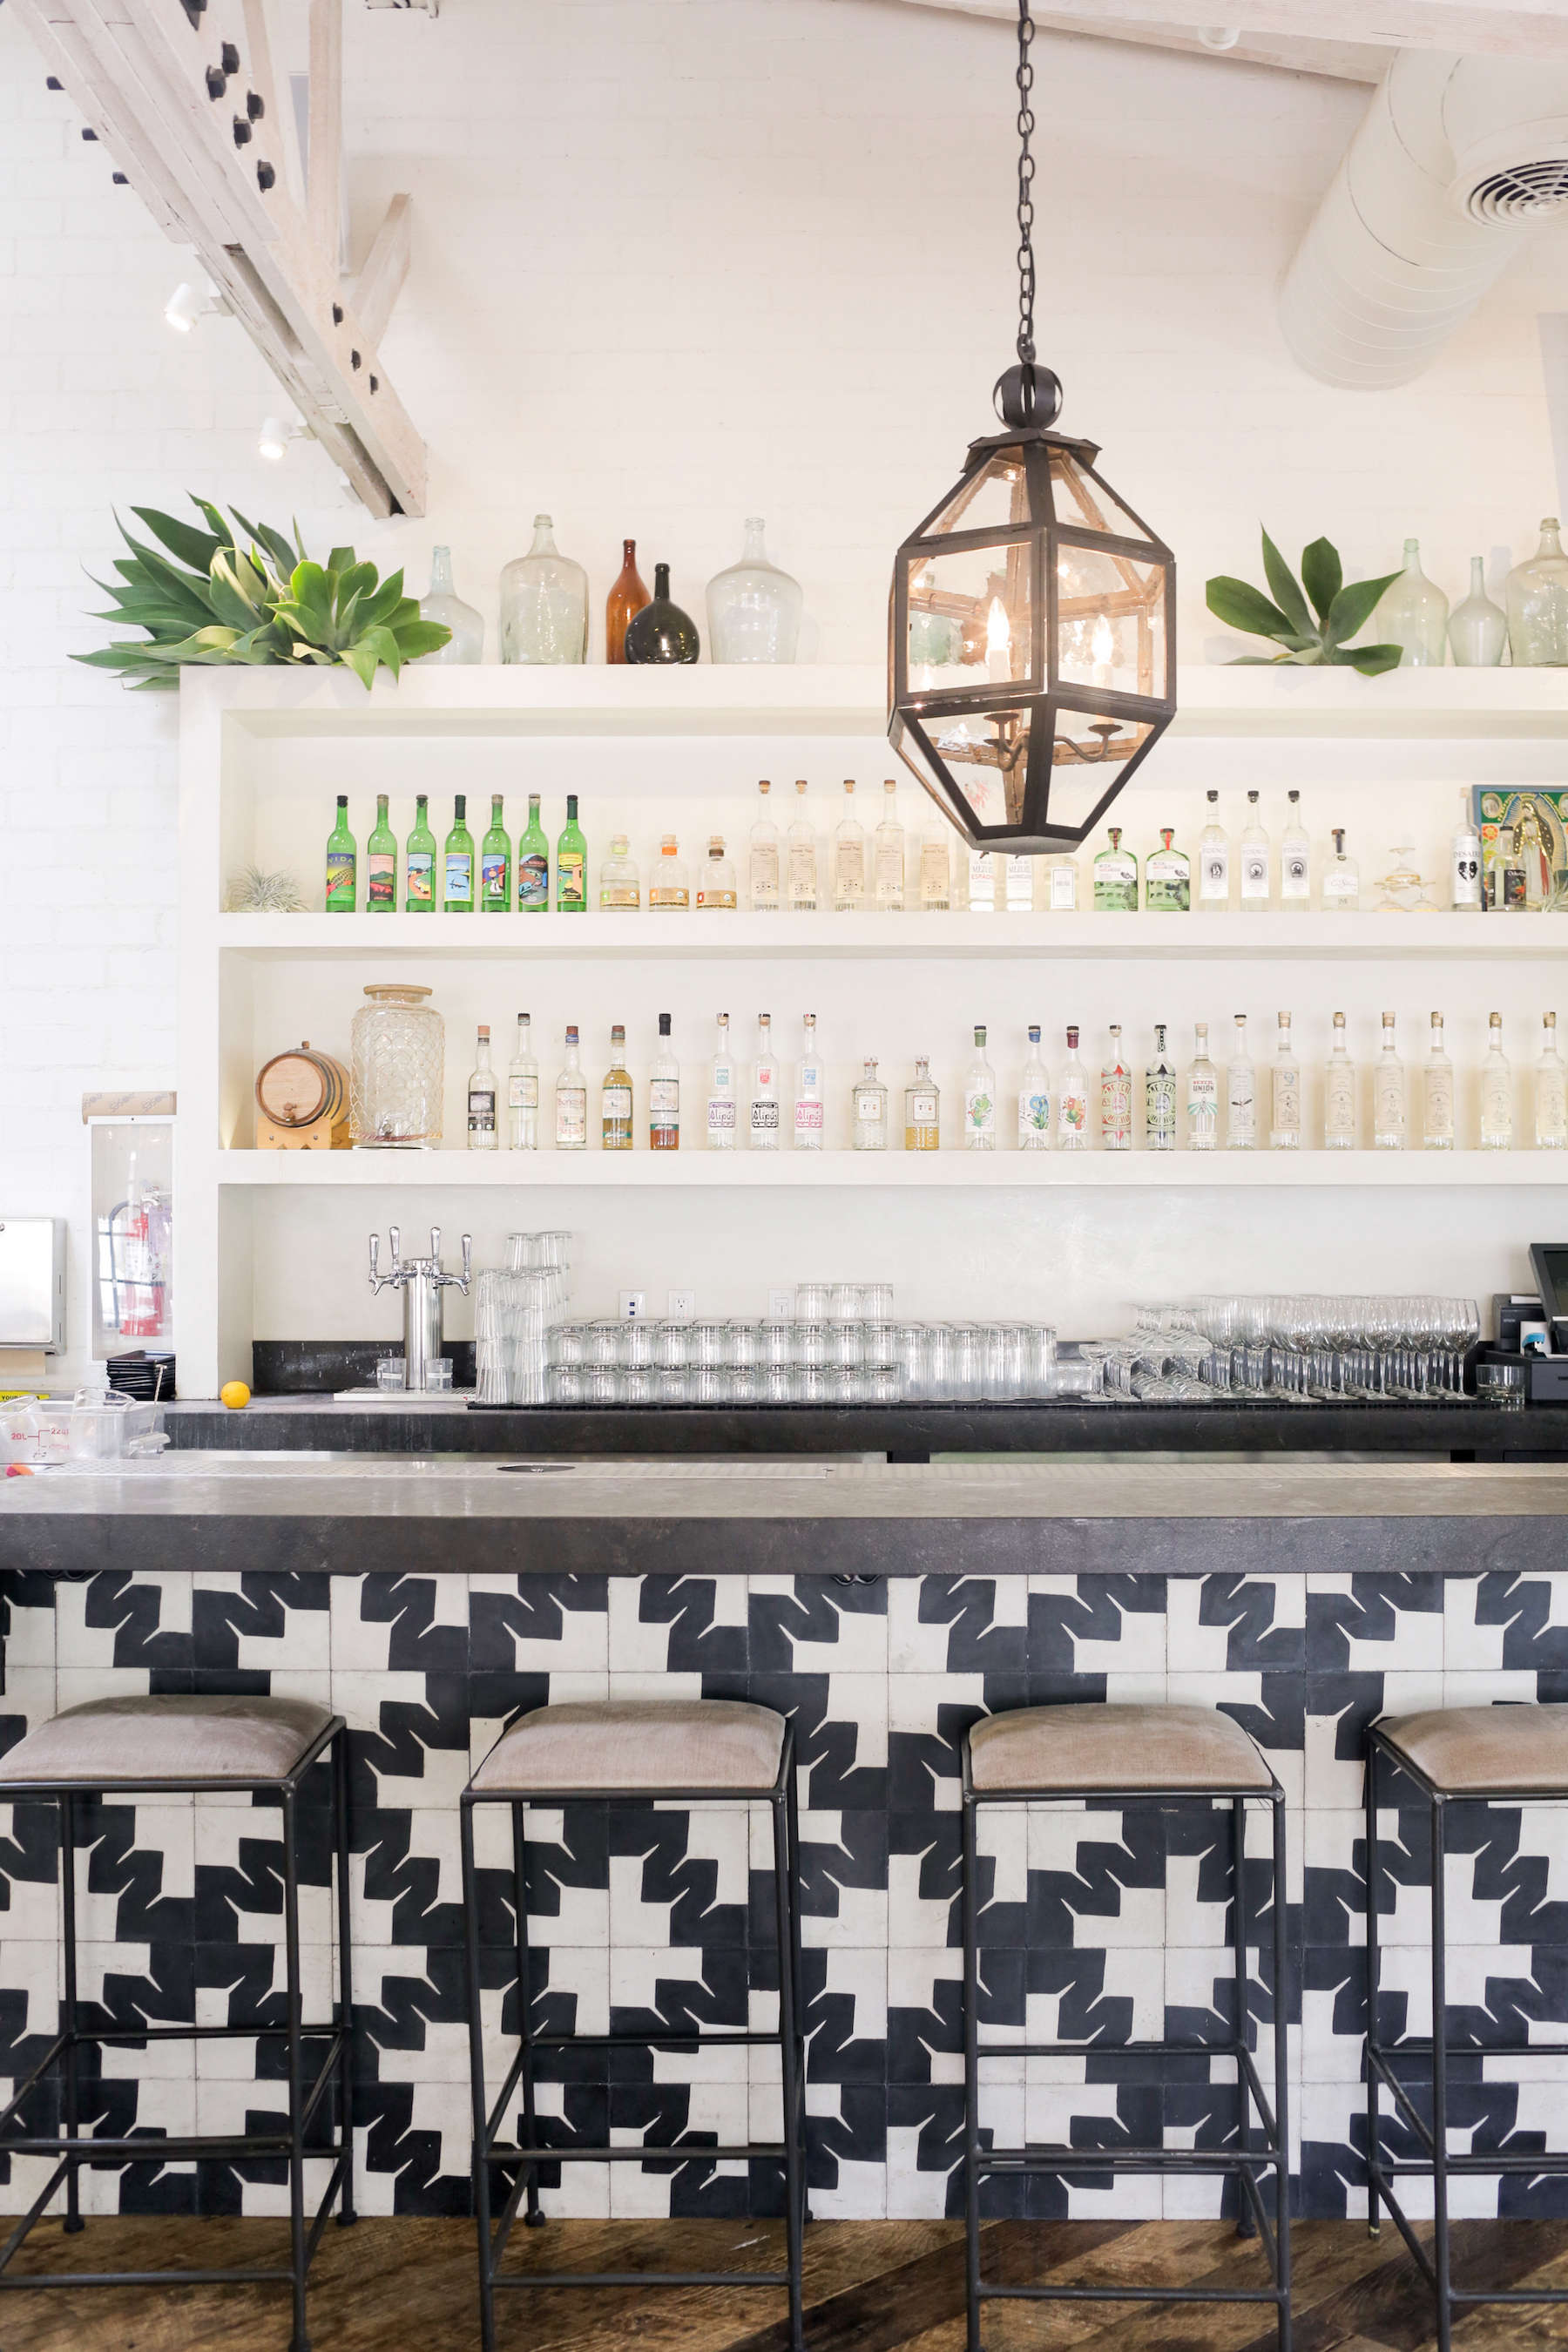 gracias-madre-restaurant-west-hollywood-la-bar-black-white-tile-pattern-lantern